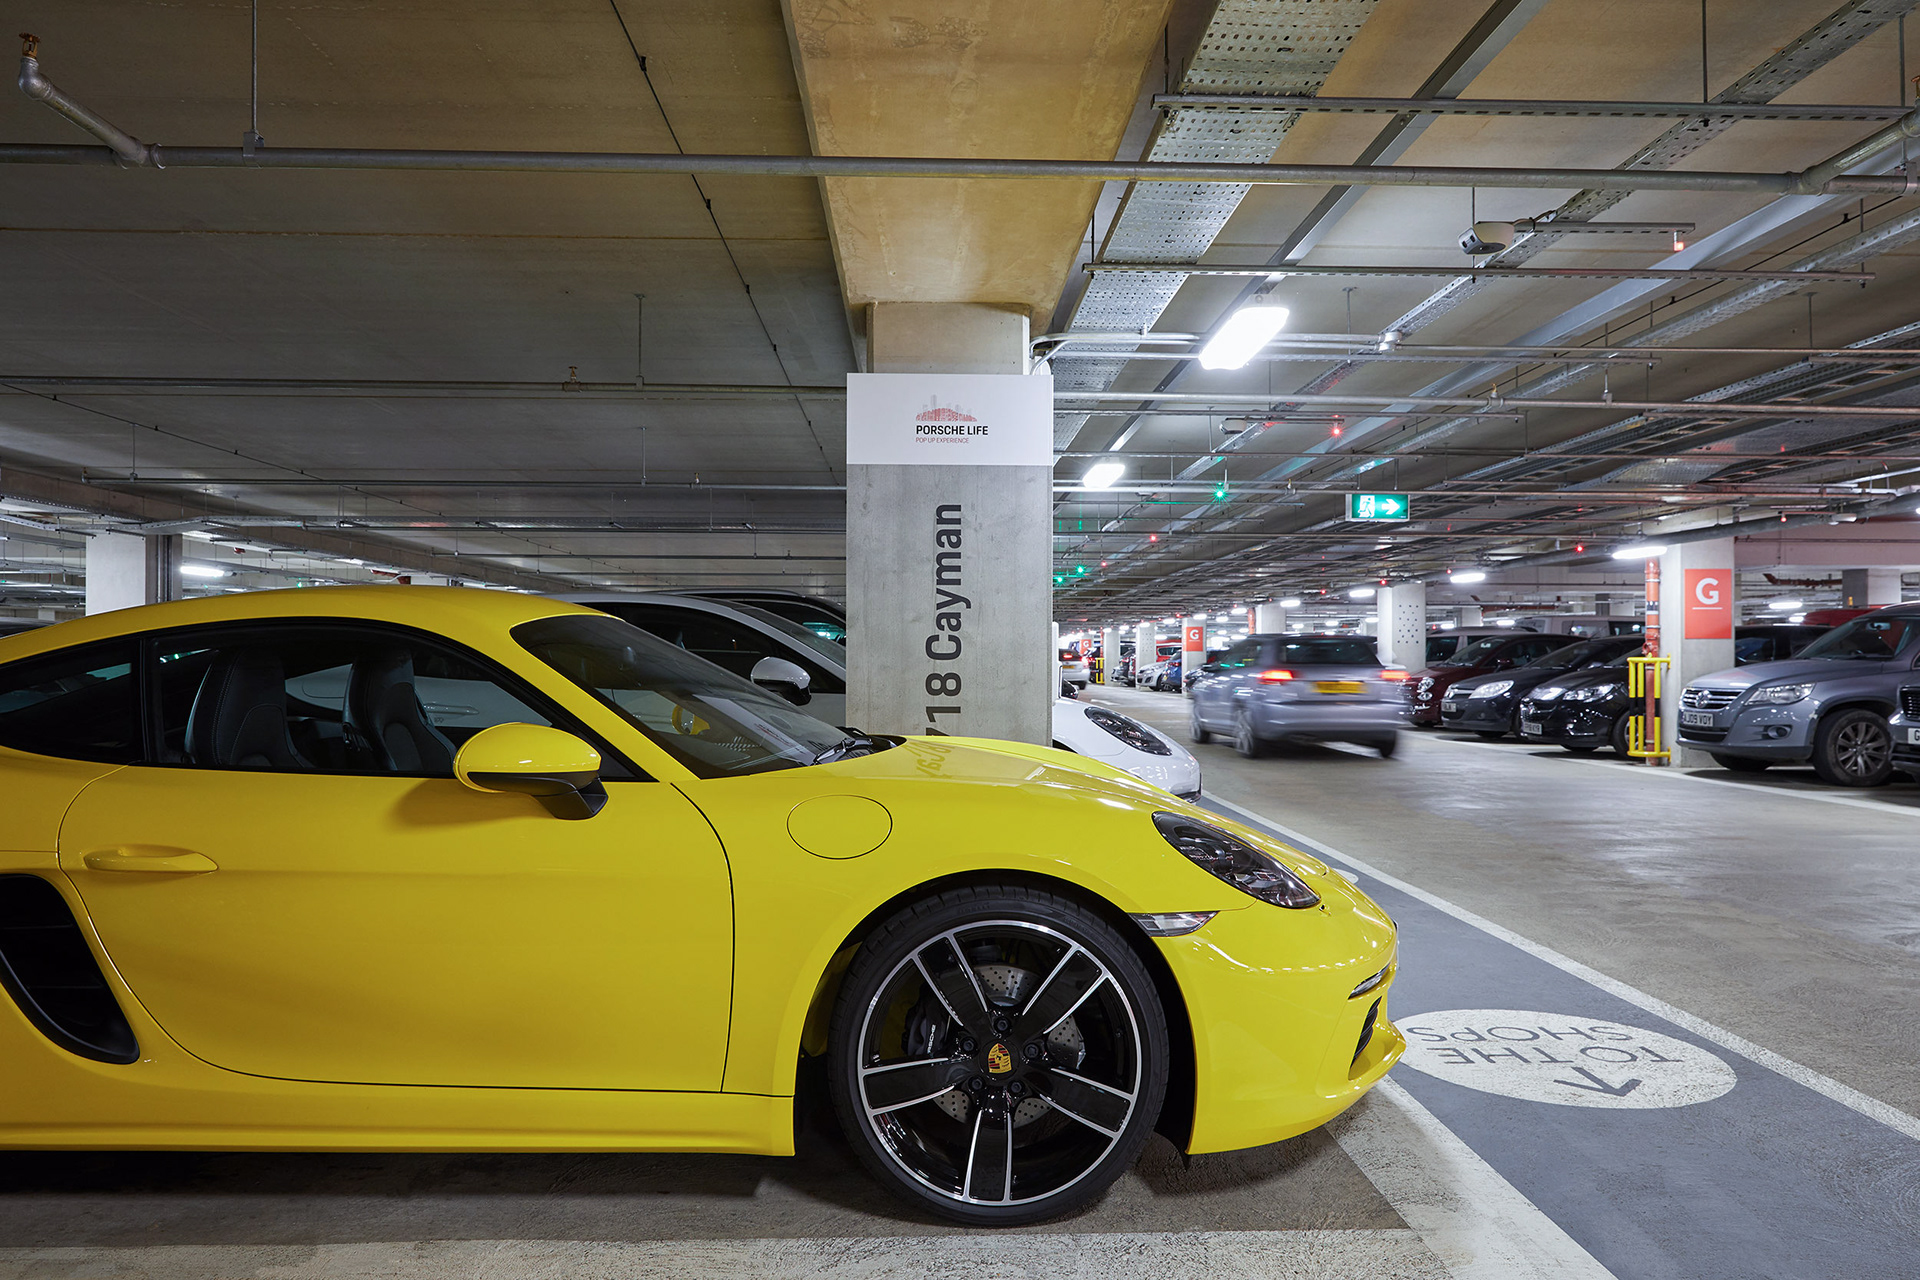 Retail Photography Porsche Store Oxford yellow car in car park waiting for people to arrive for drive away experience